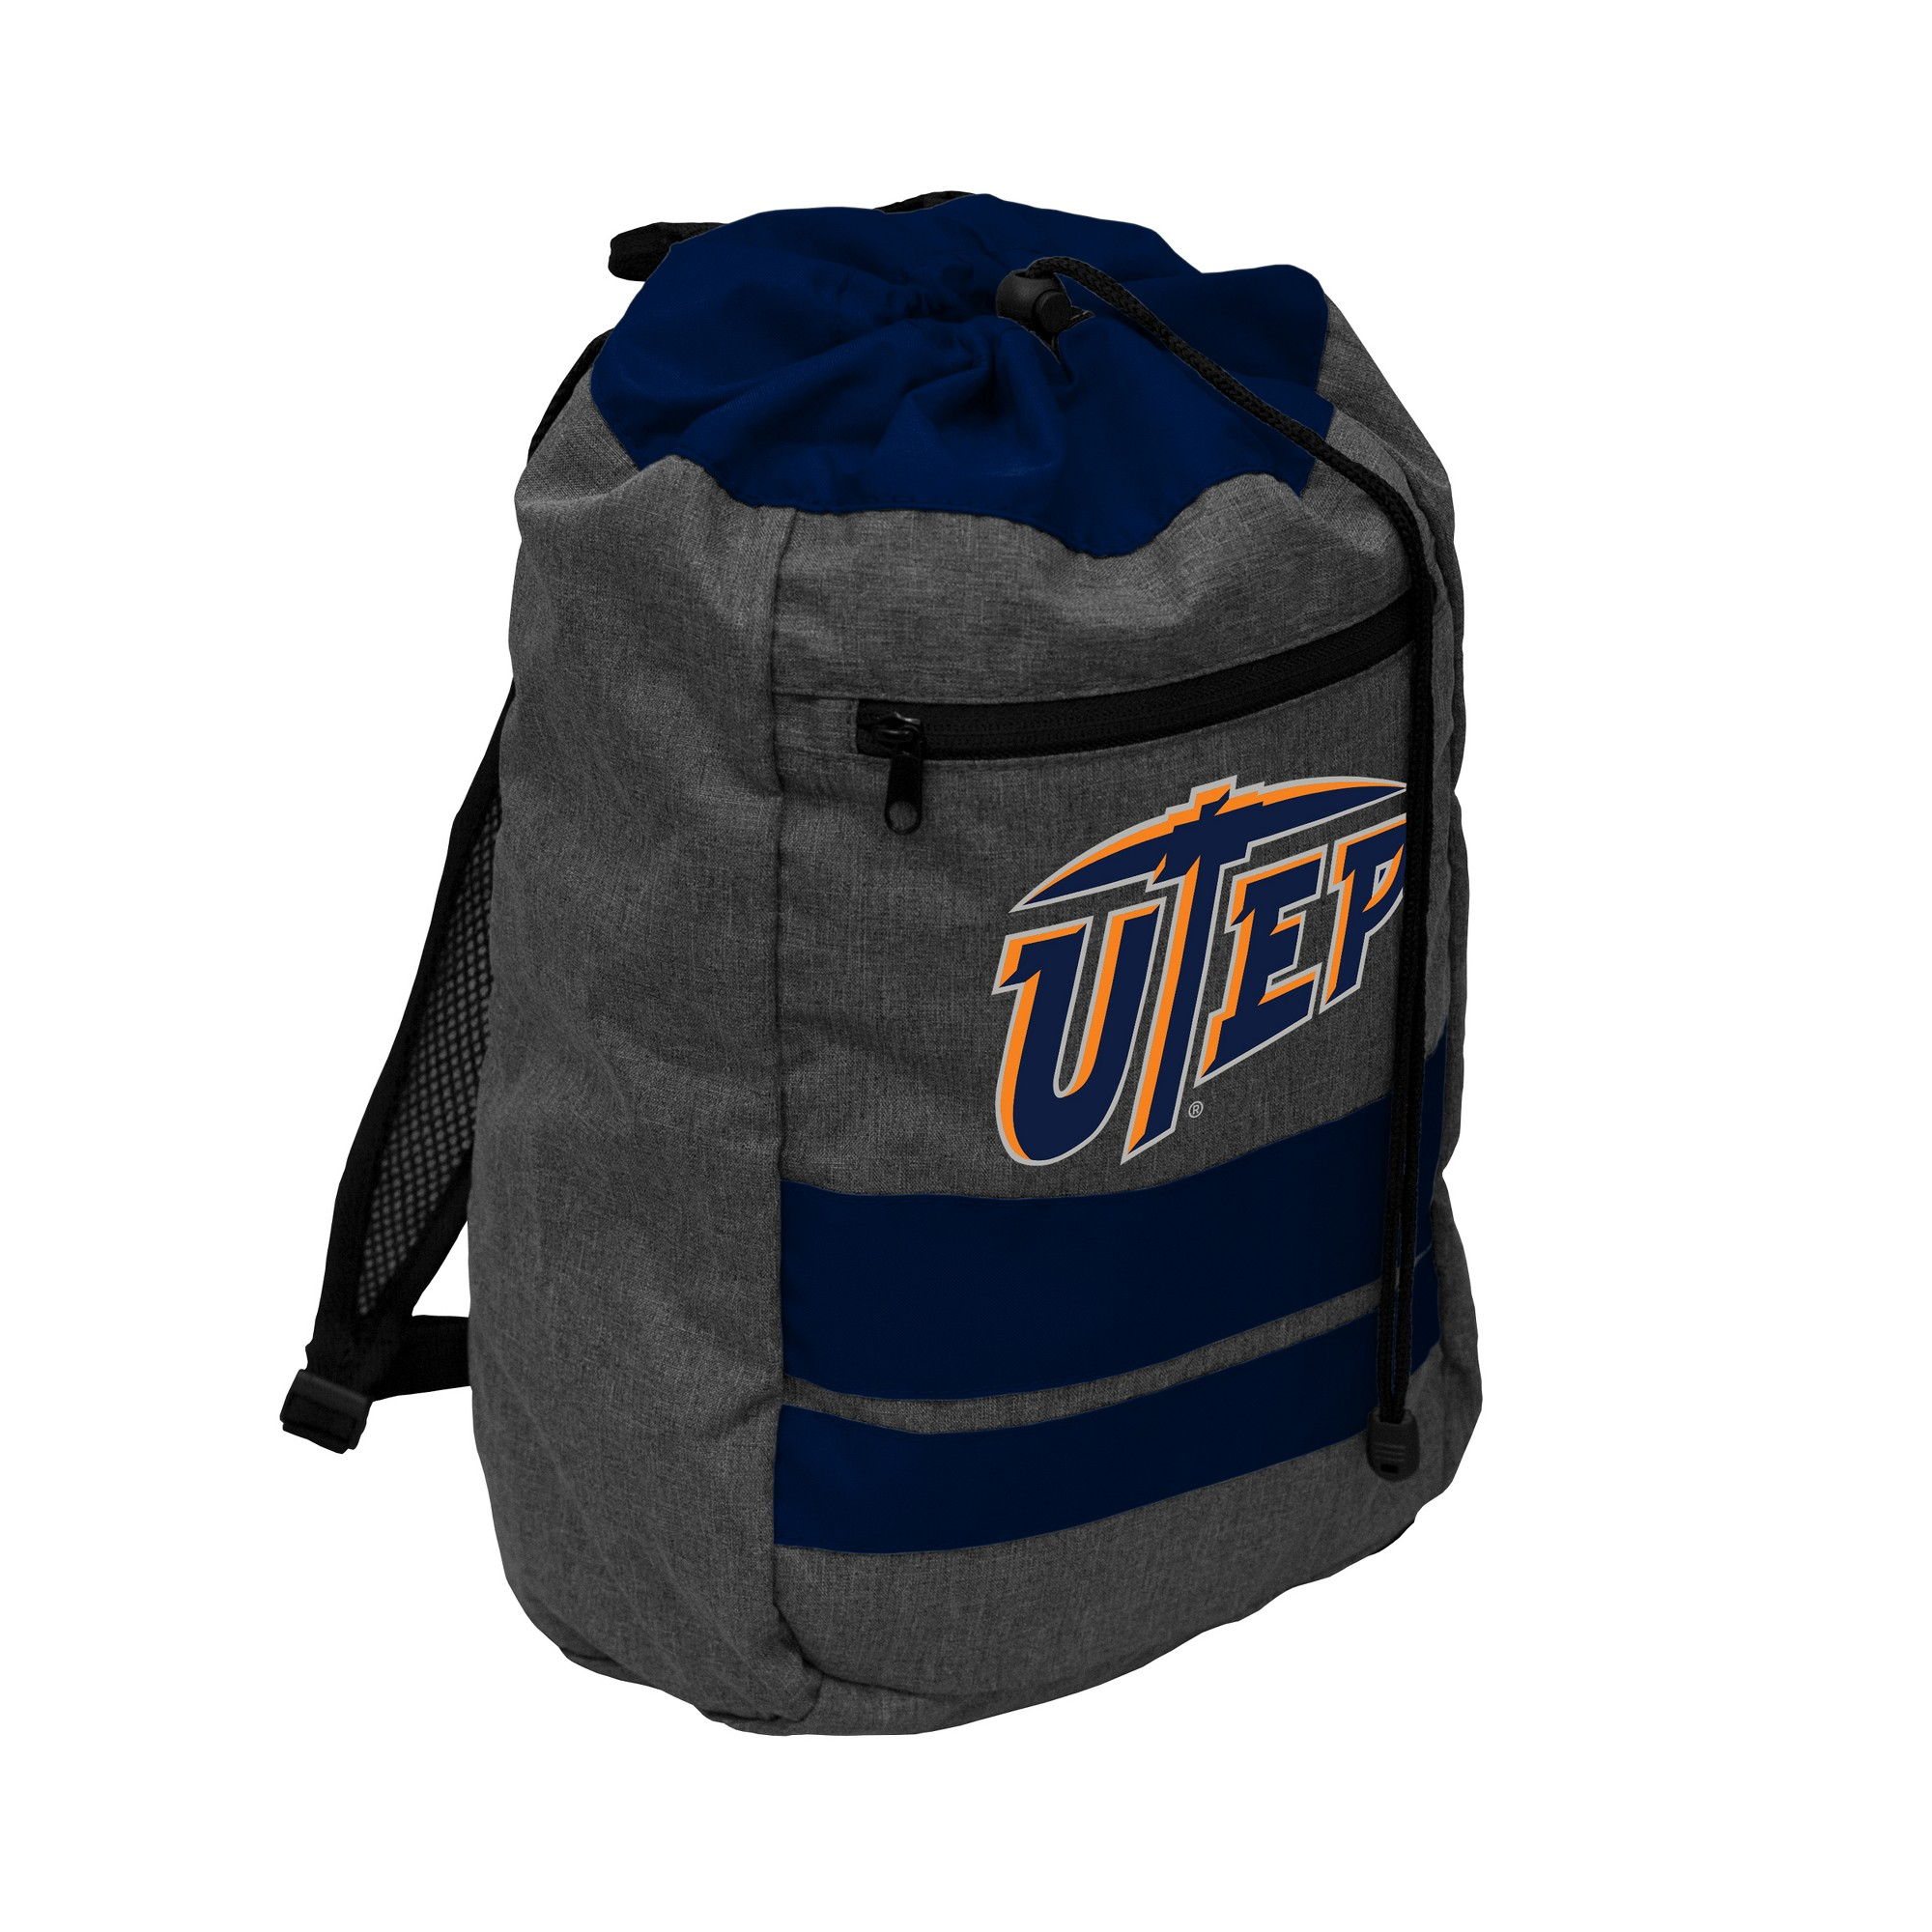 NCAA Slip Backsack